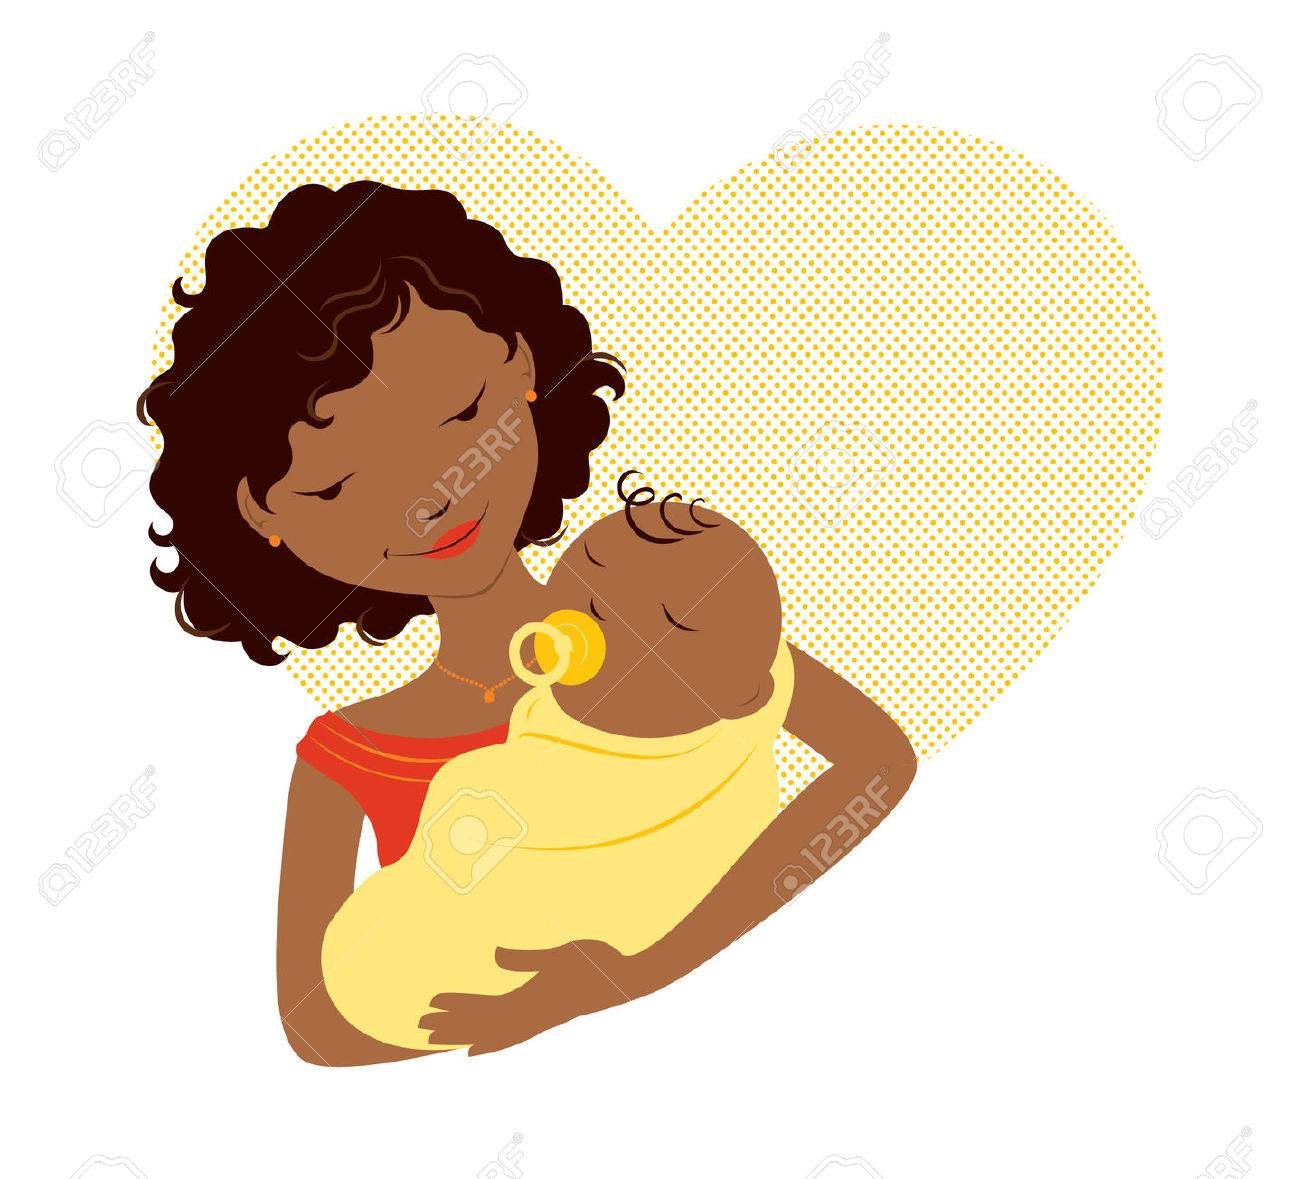 African Mother Holding Baby In Front Of A Heart Royalty Free Cliparts Vectors And Stock Illustration Image 37461063